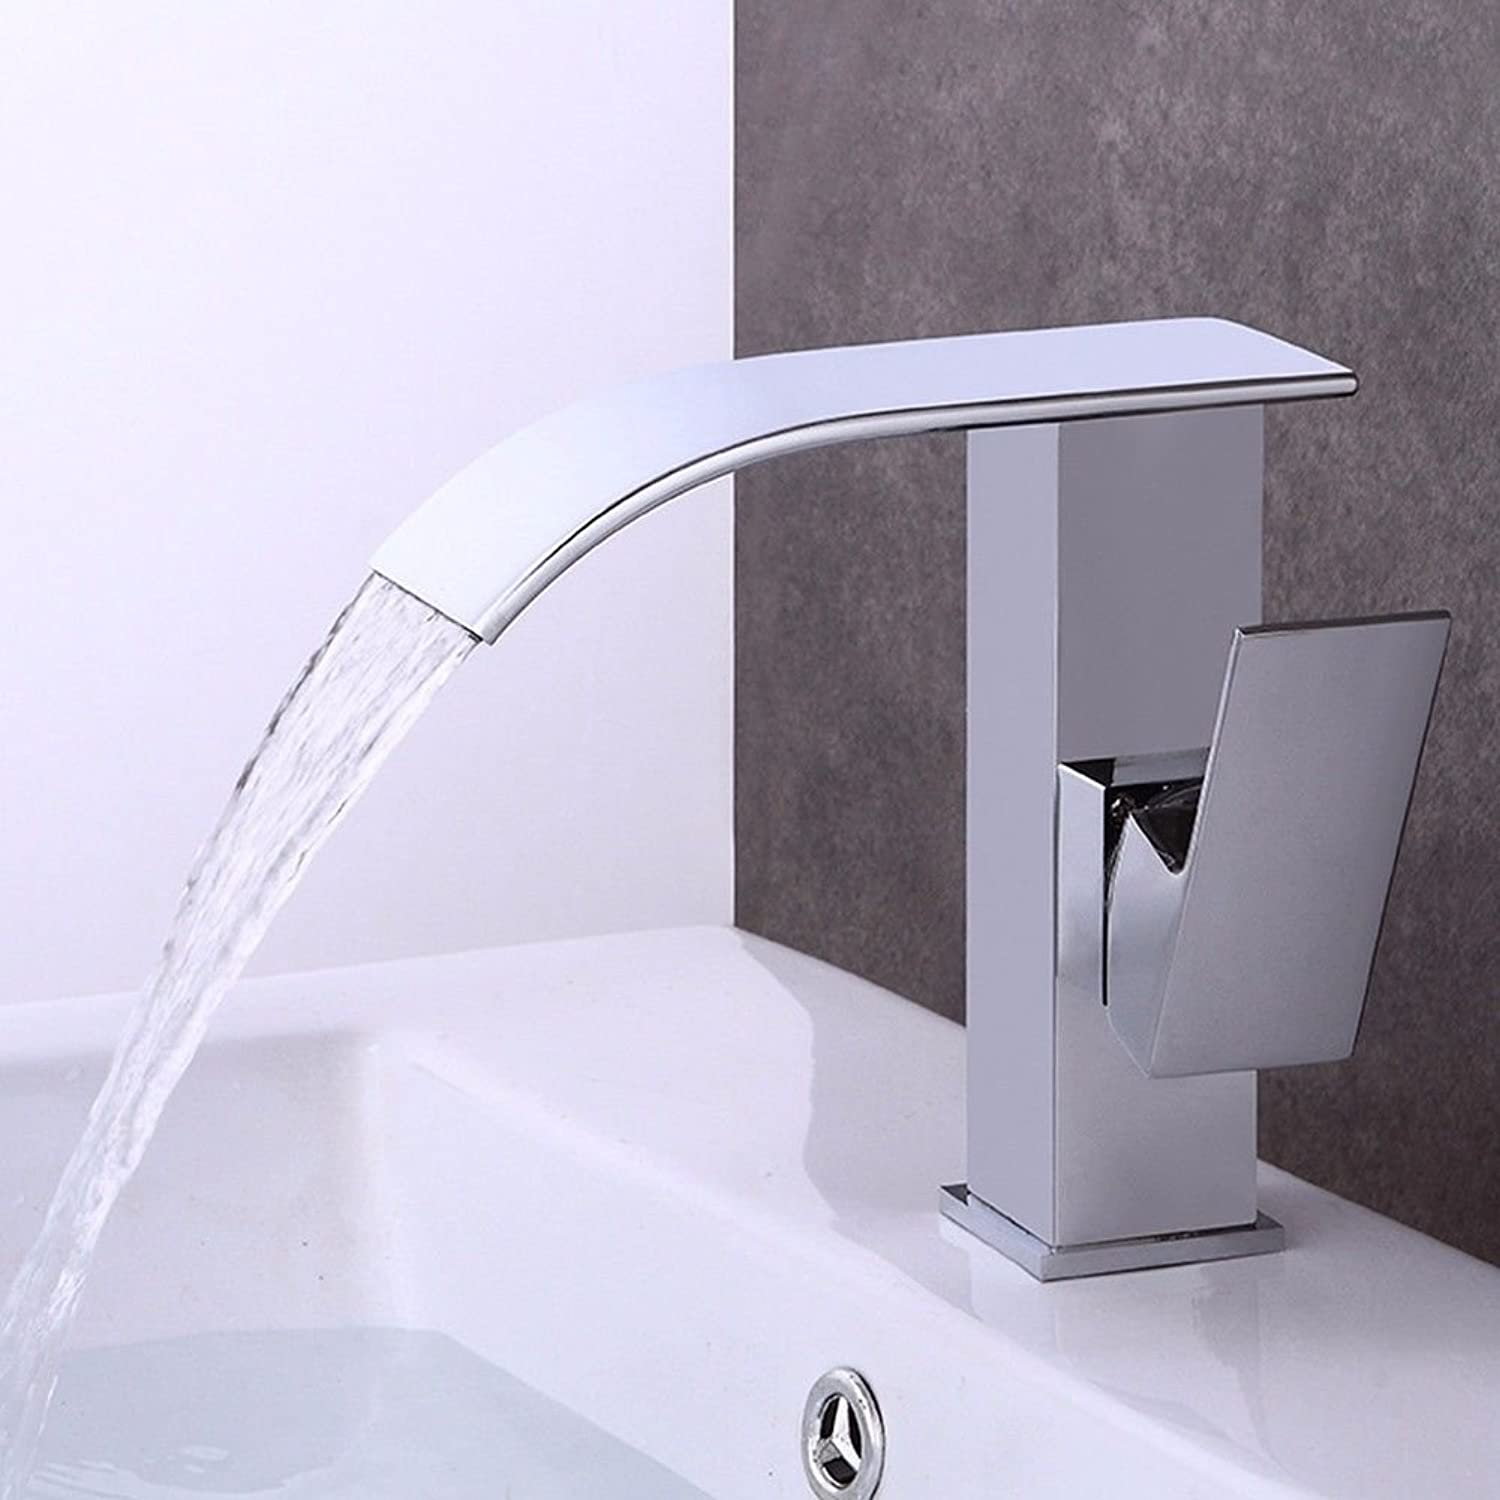 NewBorn Faucet Water Taps Hot And Cold Water The Plating Until Hot And Cold Basin Wash Bathroom Cabinet